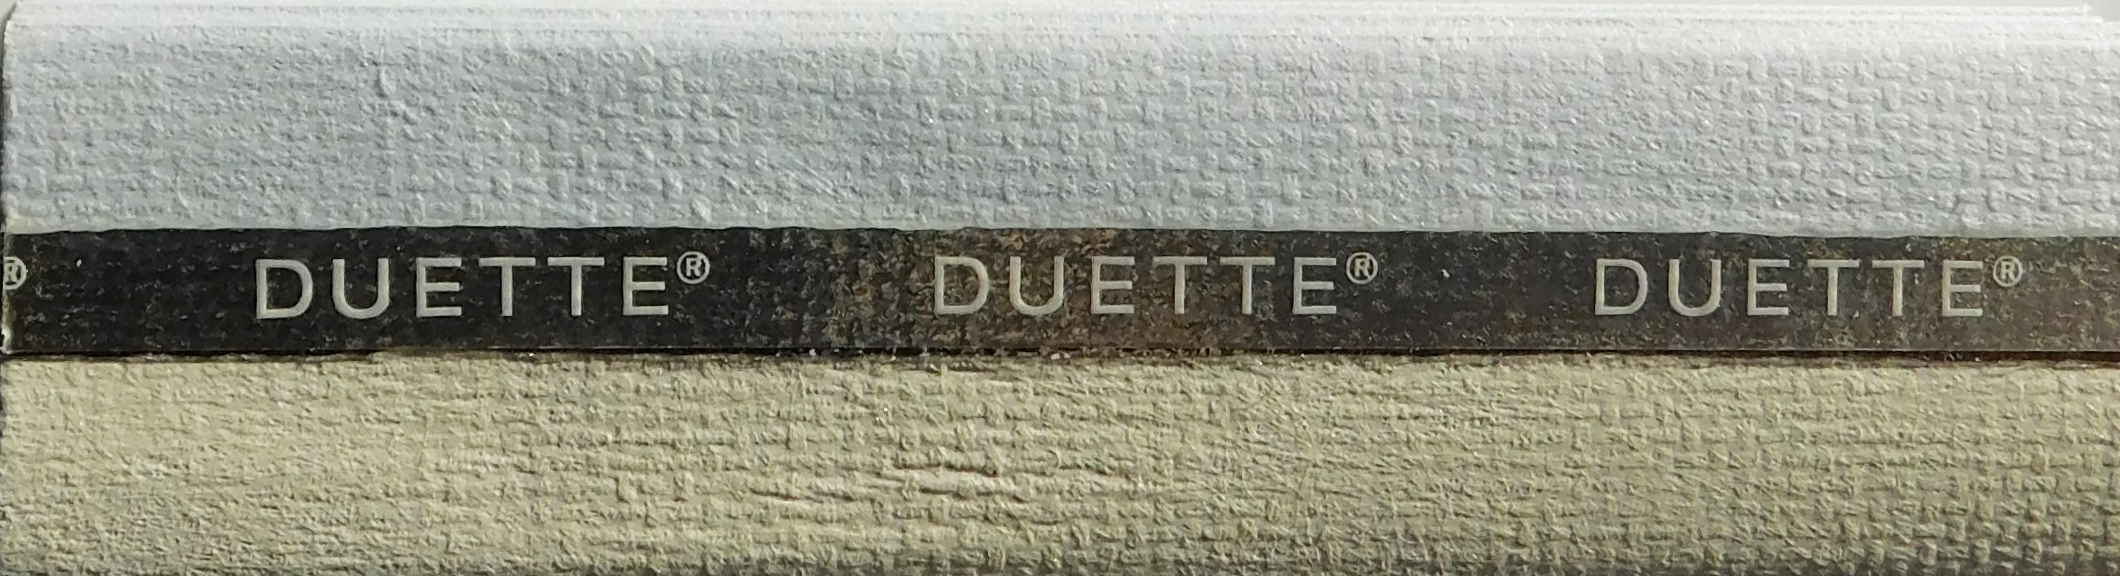 Unix Sheepskin Blackout Duette blind sample